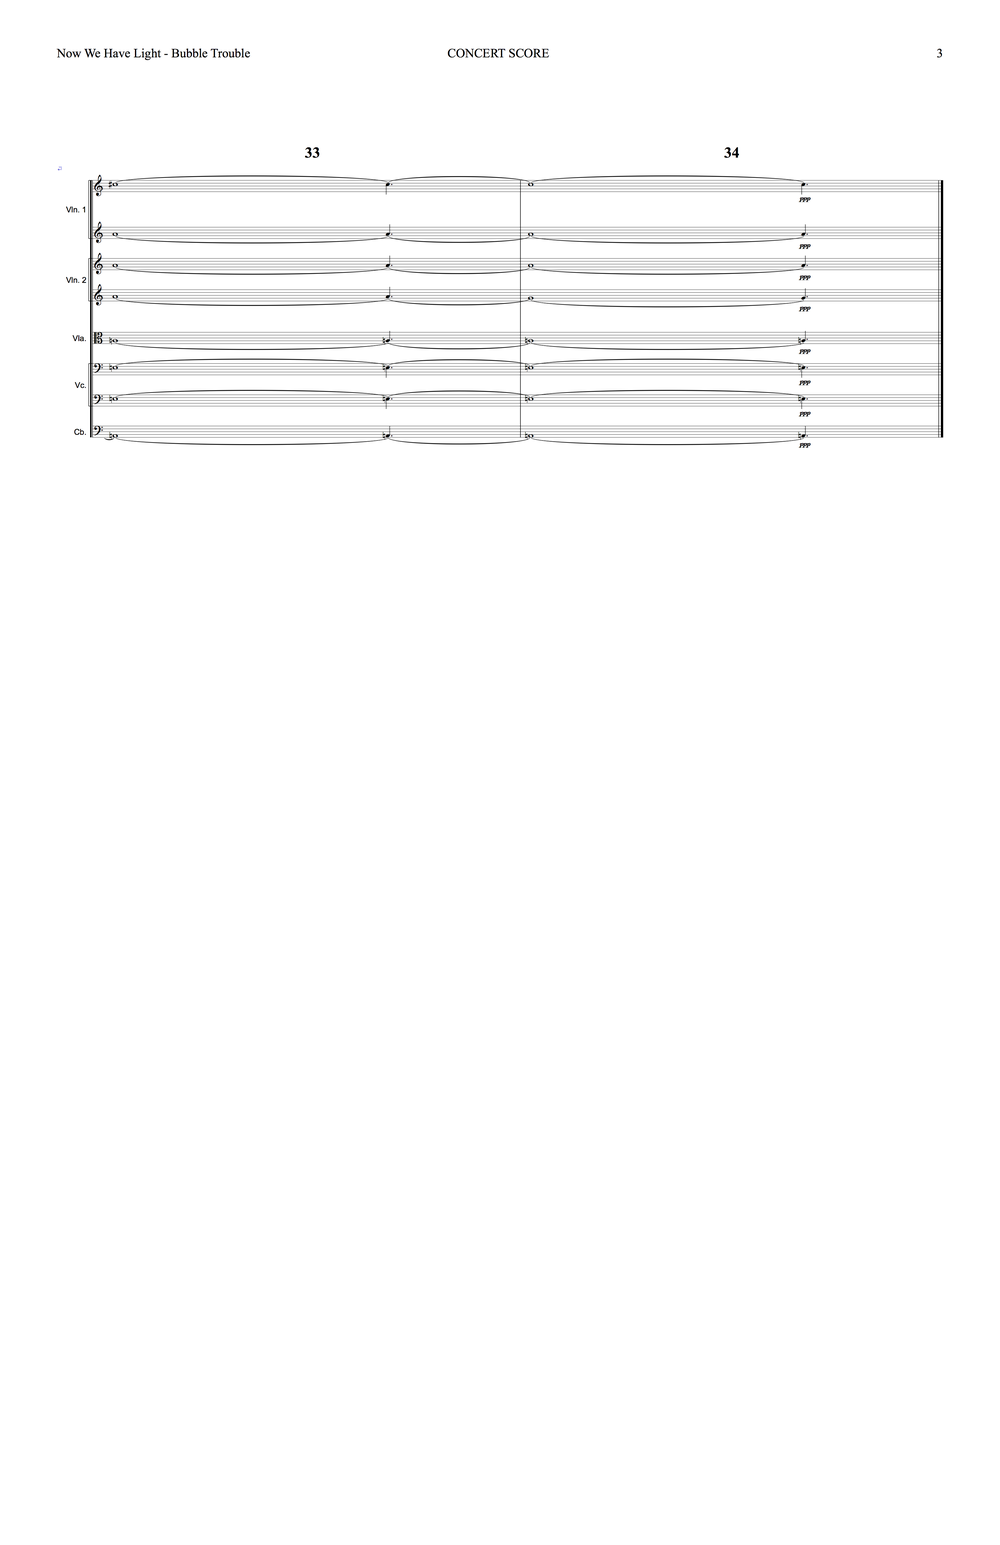 Sanguine Hum - 'Bubble Trouble' - string arrangement page 3